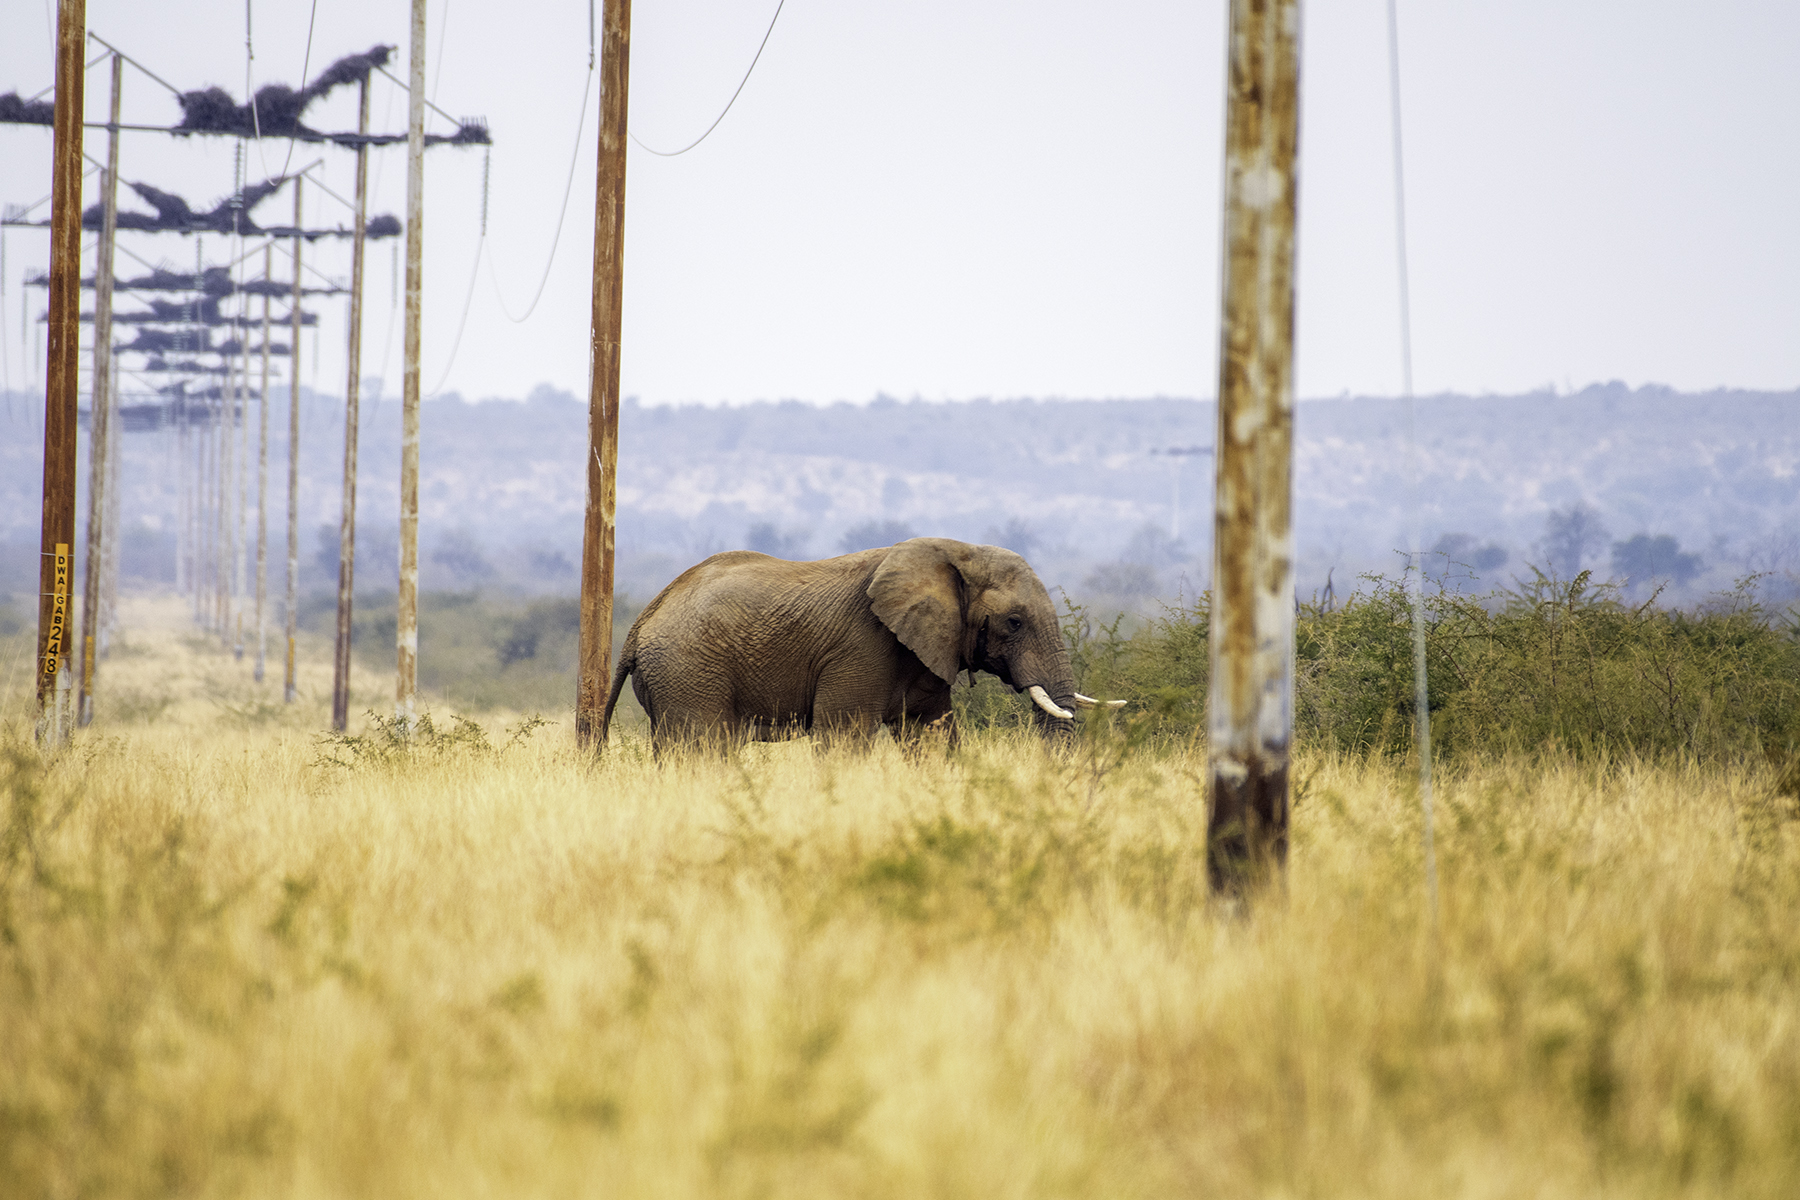 As the human population continues to grow at an alarming and unsustainable rate, we continue to encroach more and more on the few wildlife areas left. These are areas which animals like elephants desparatly depend on. This puts both elephants and humans in danger and does nothing to abate the human wildlife conflict.